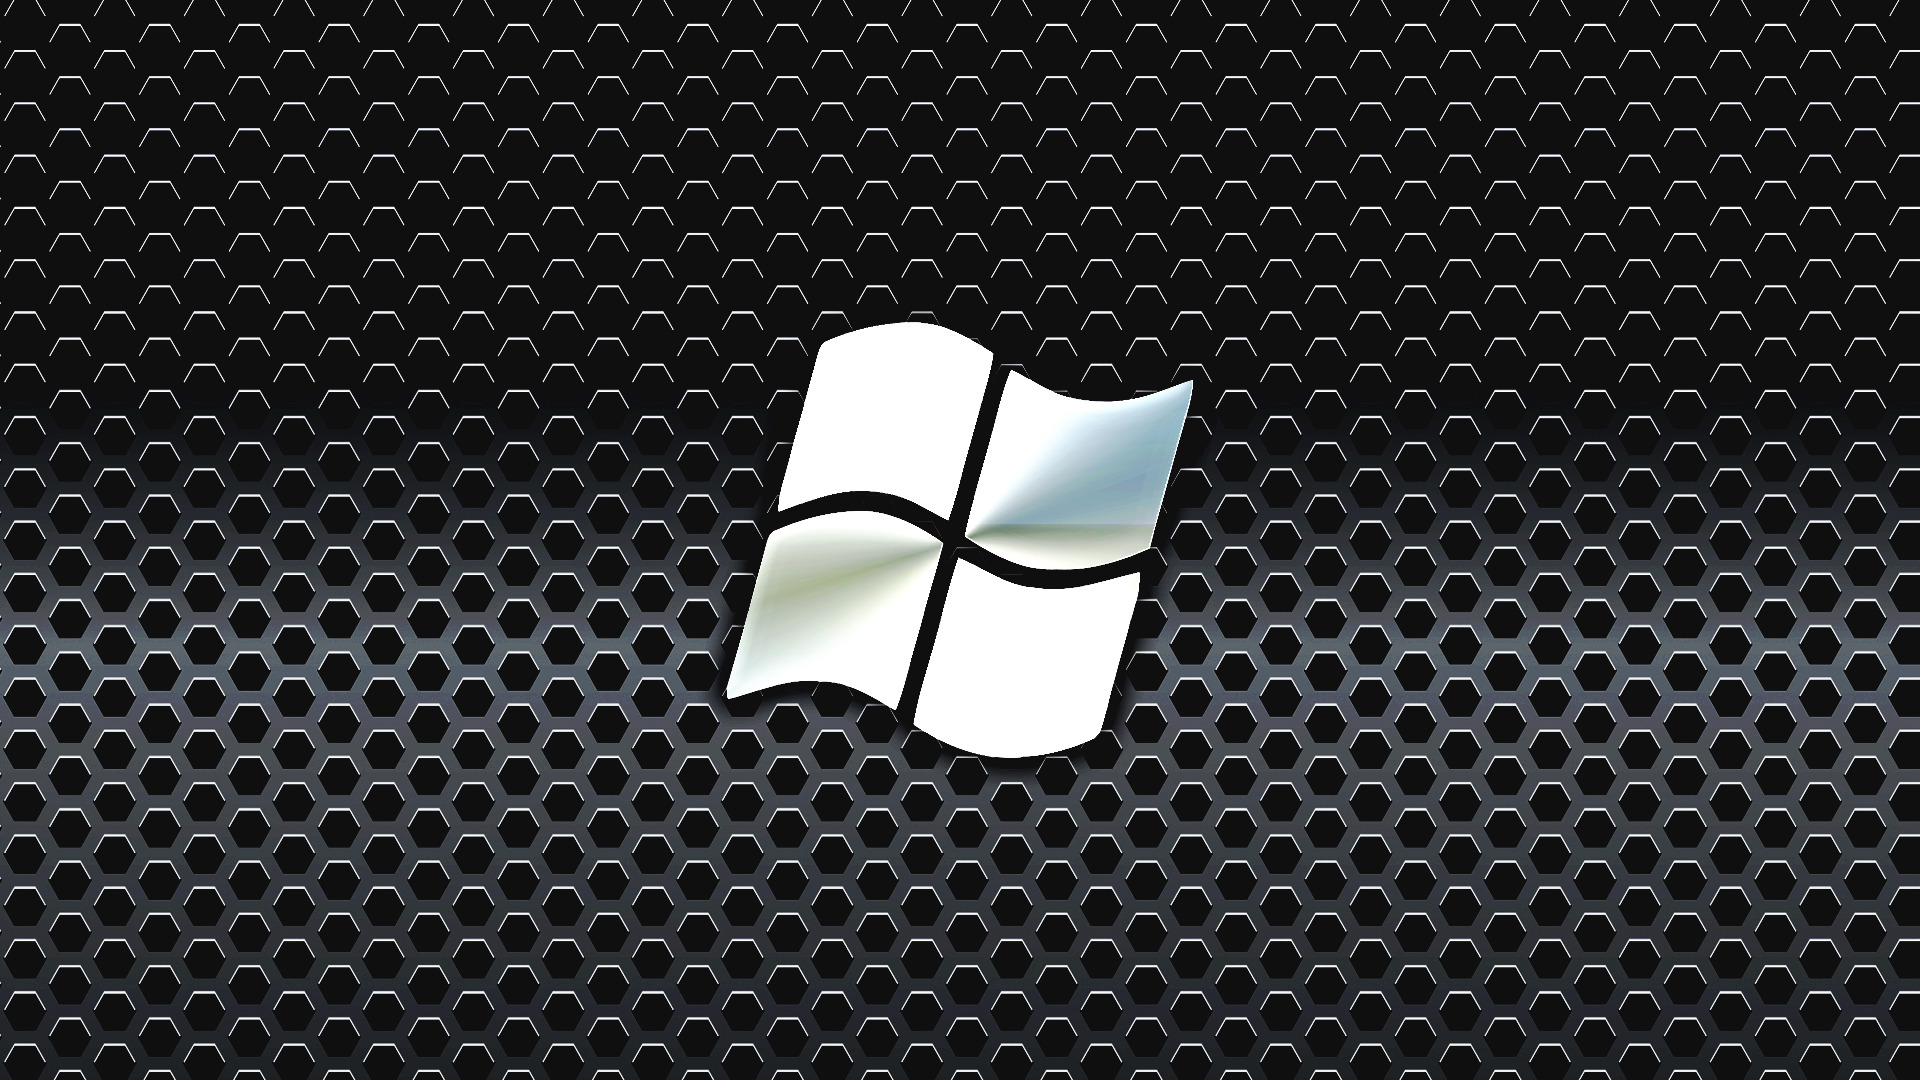 microsoft windows logos computer HD Wallpaper